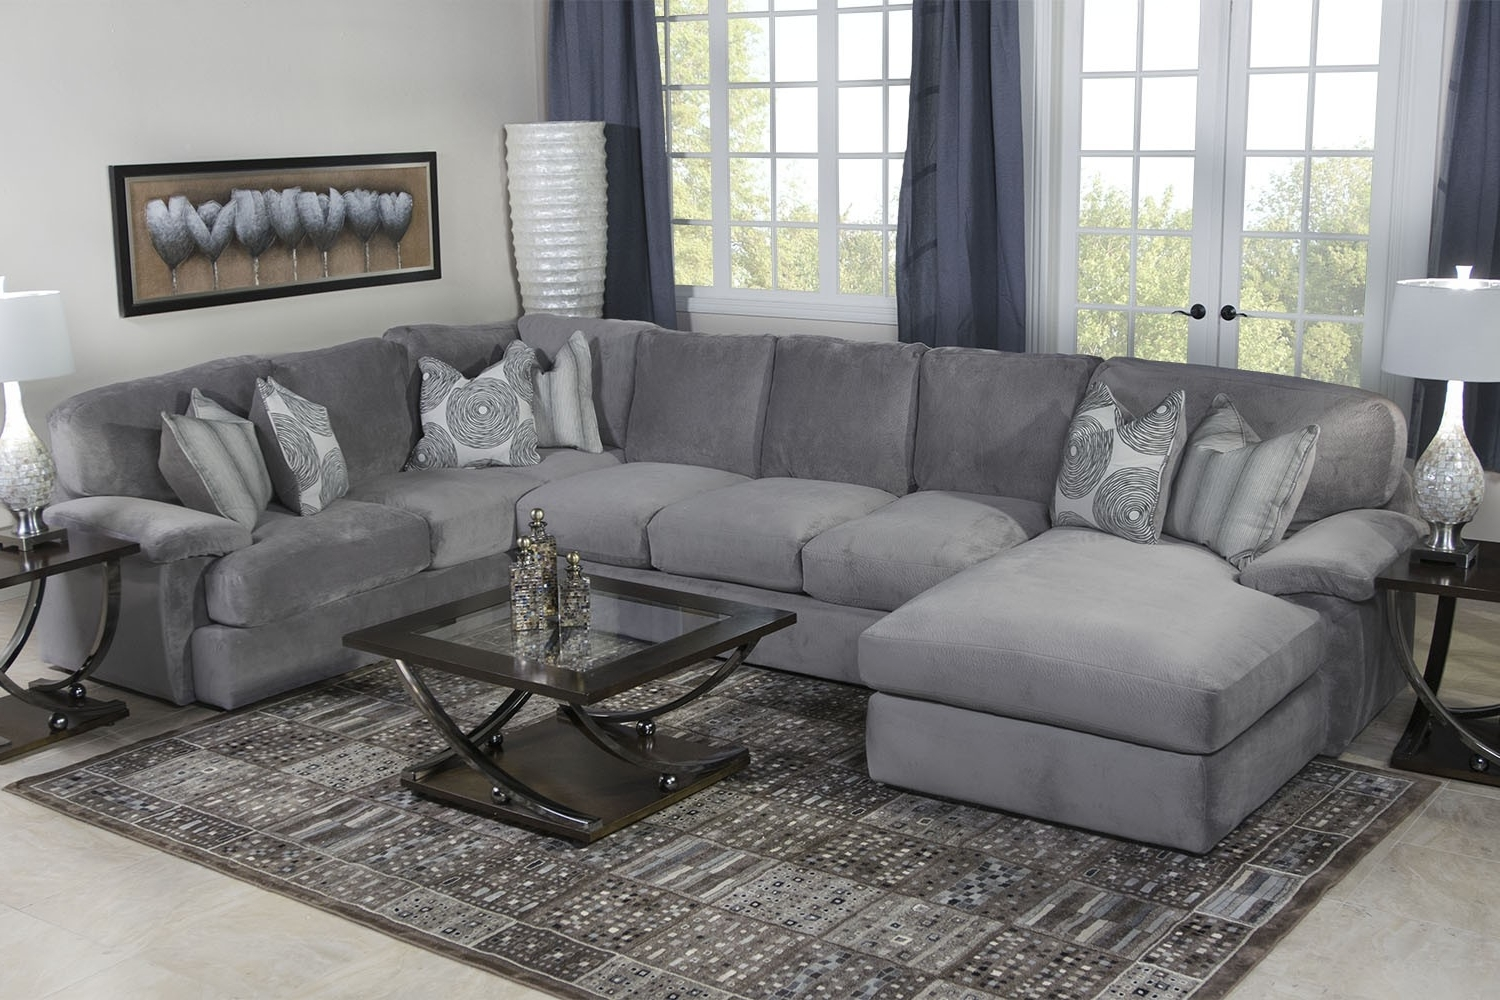 Media Room Sectional Sofas Throughout Most Current Key West Sectional Living Room In Gray Media Image (View 4 of 15)